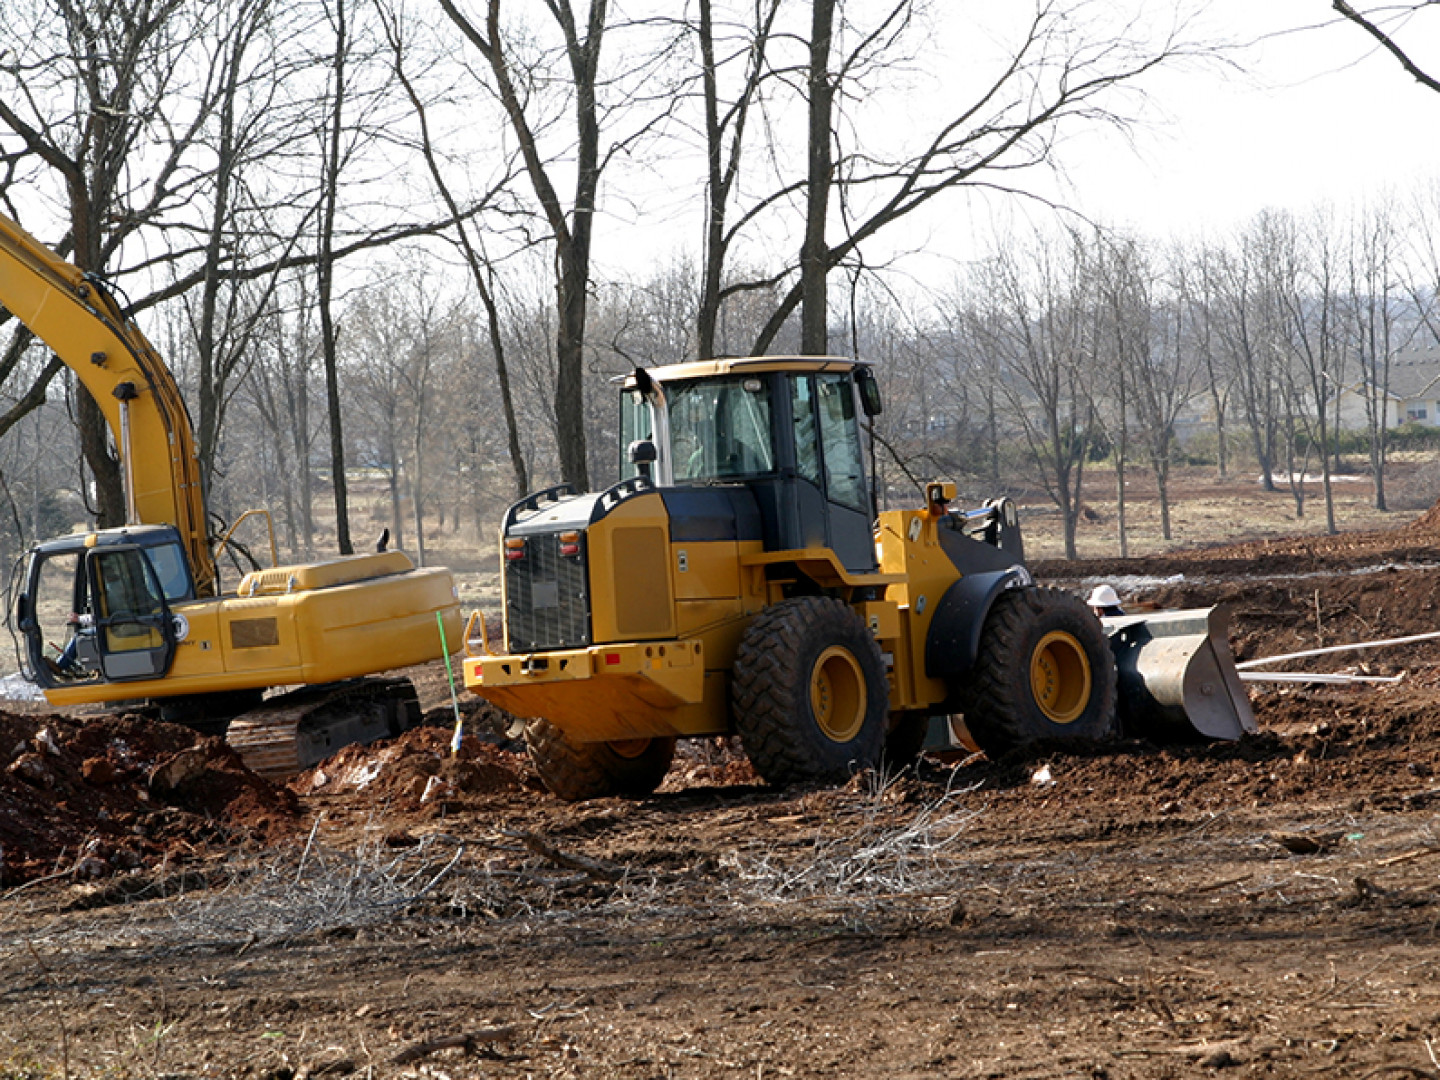 Complete Land Clearing and Brush Grinding Services